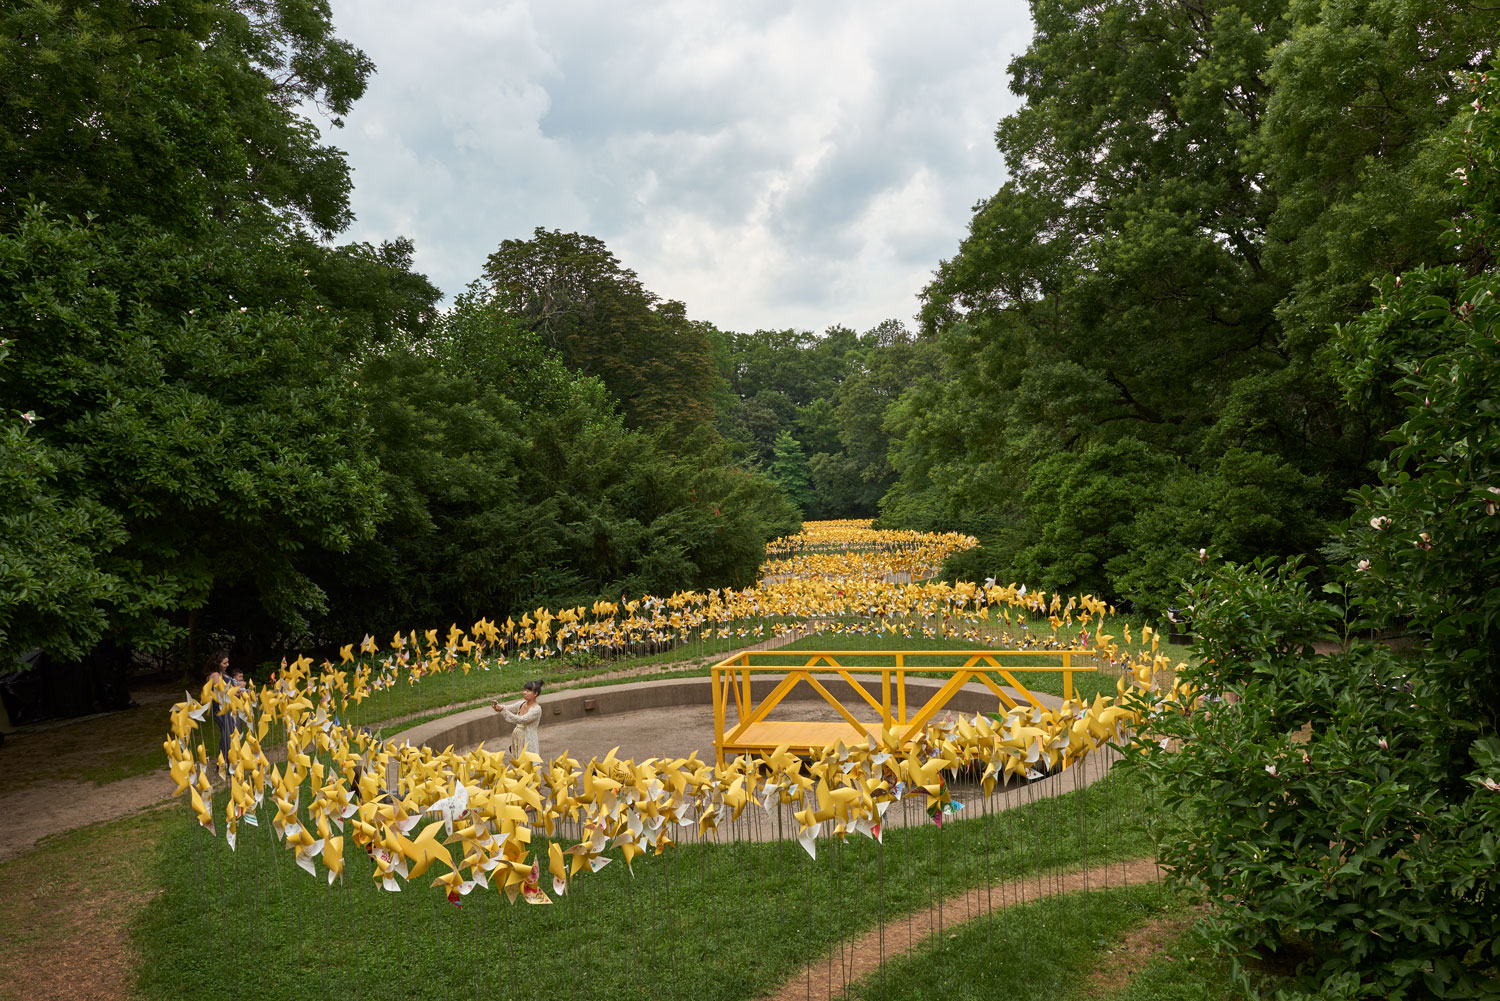 Overview of the Connective Project in Prospect Park, Brooklyn. Image © harlan erskine